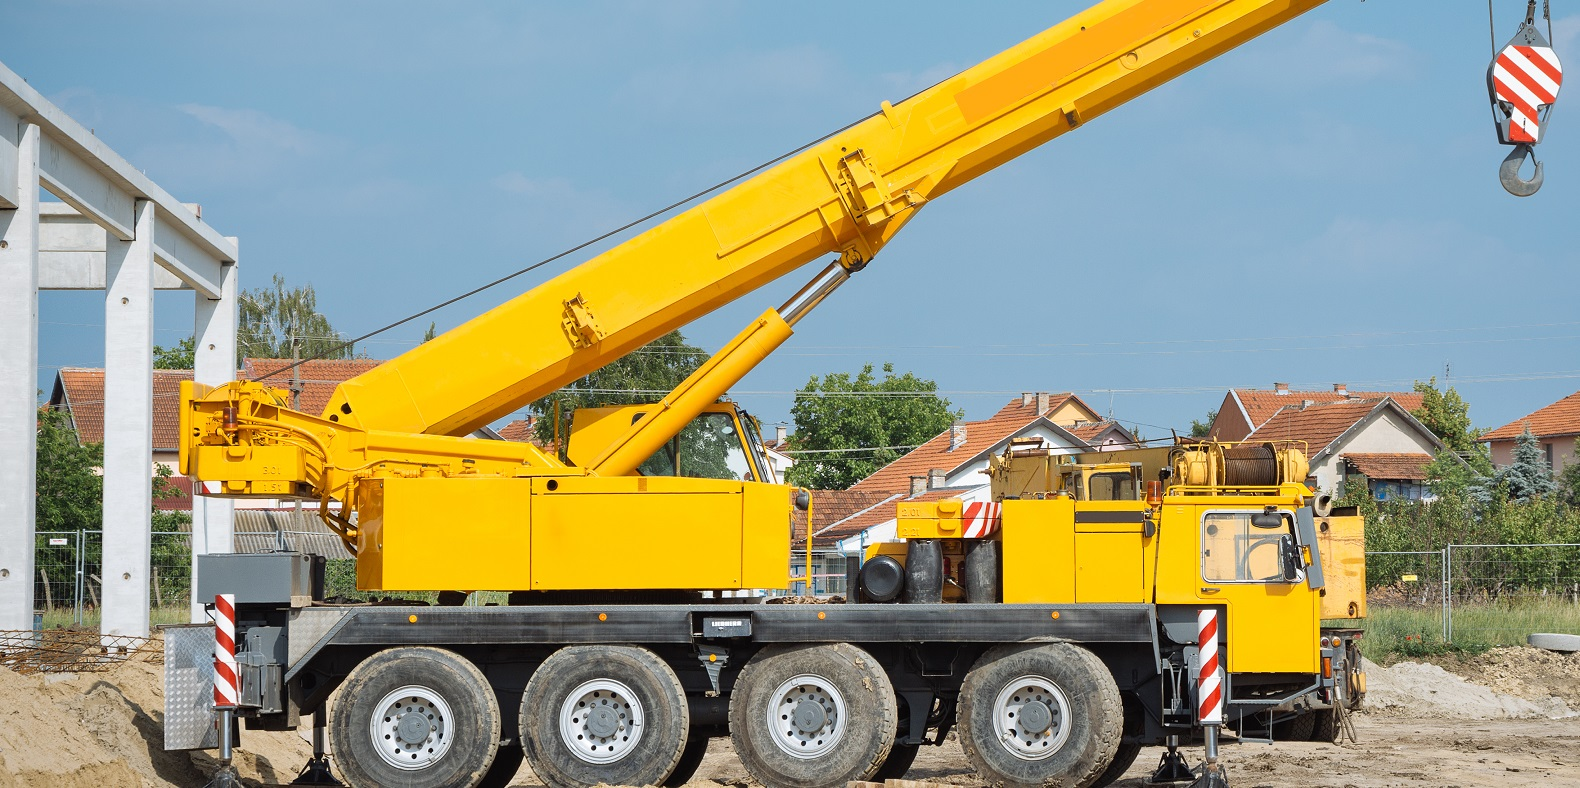 Mobile Crane Kje : Slewing mobile crane t licence course c brisbane